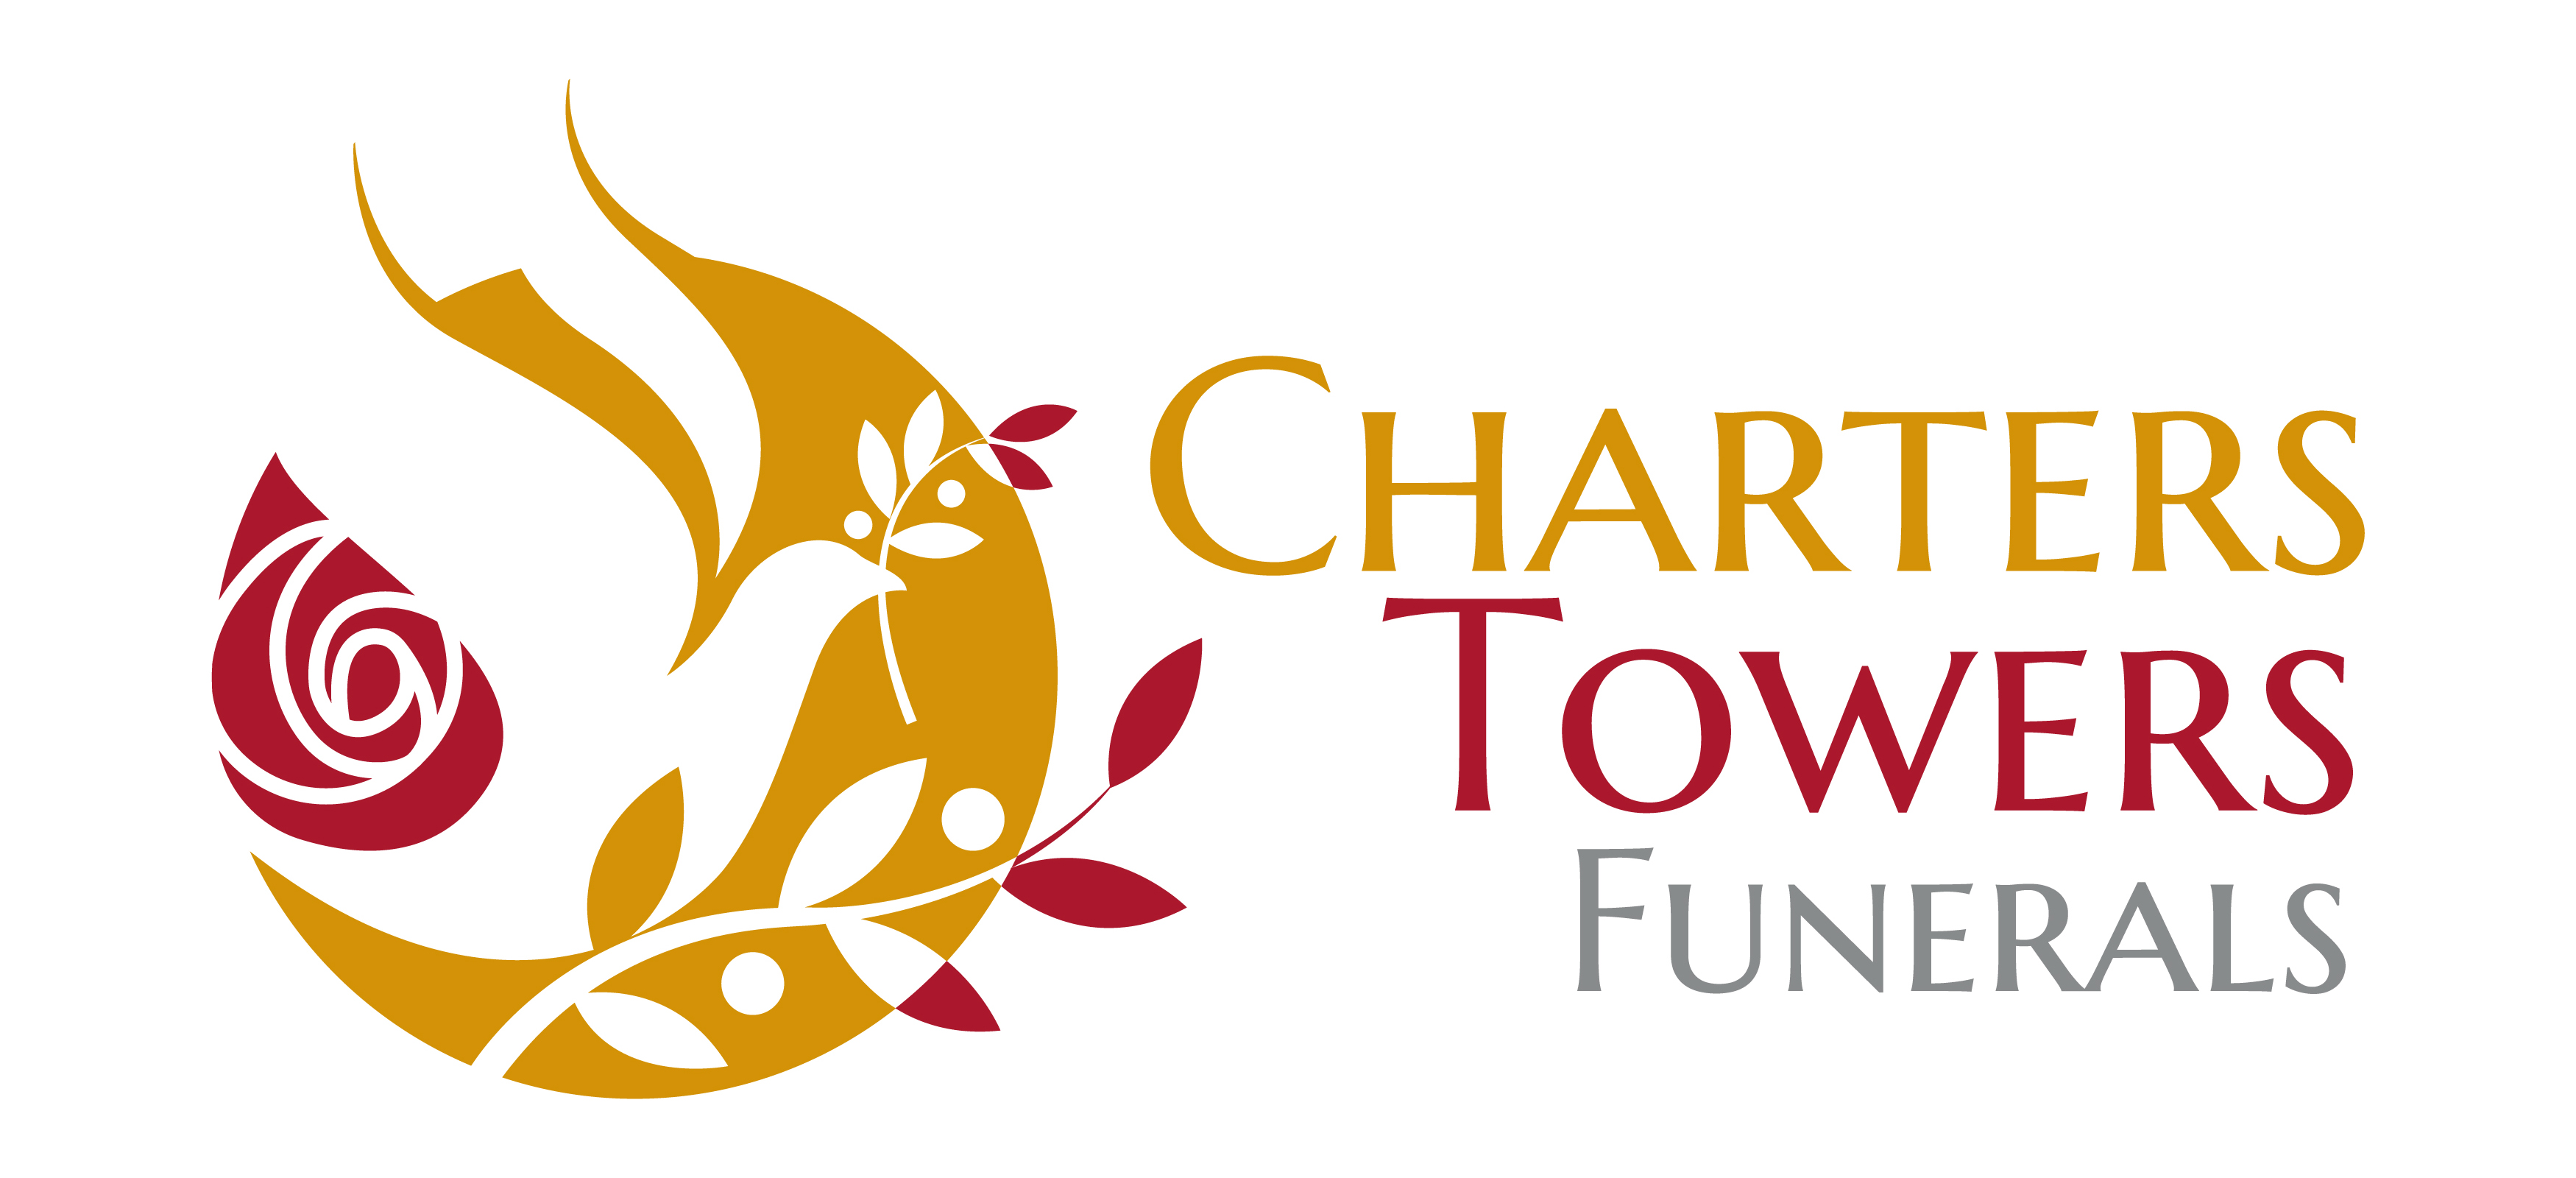 Charters Towers Funerals